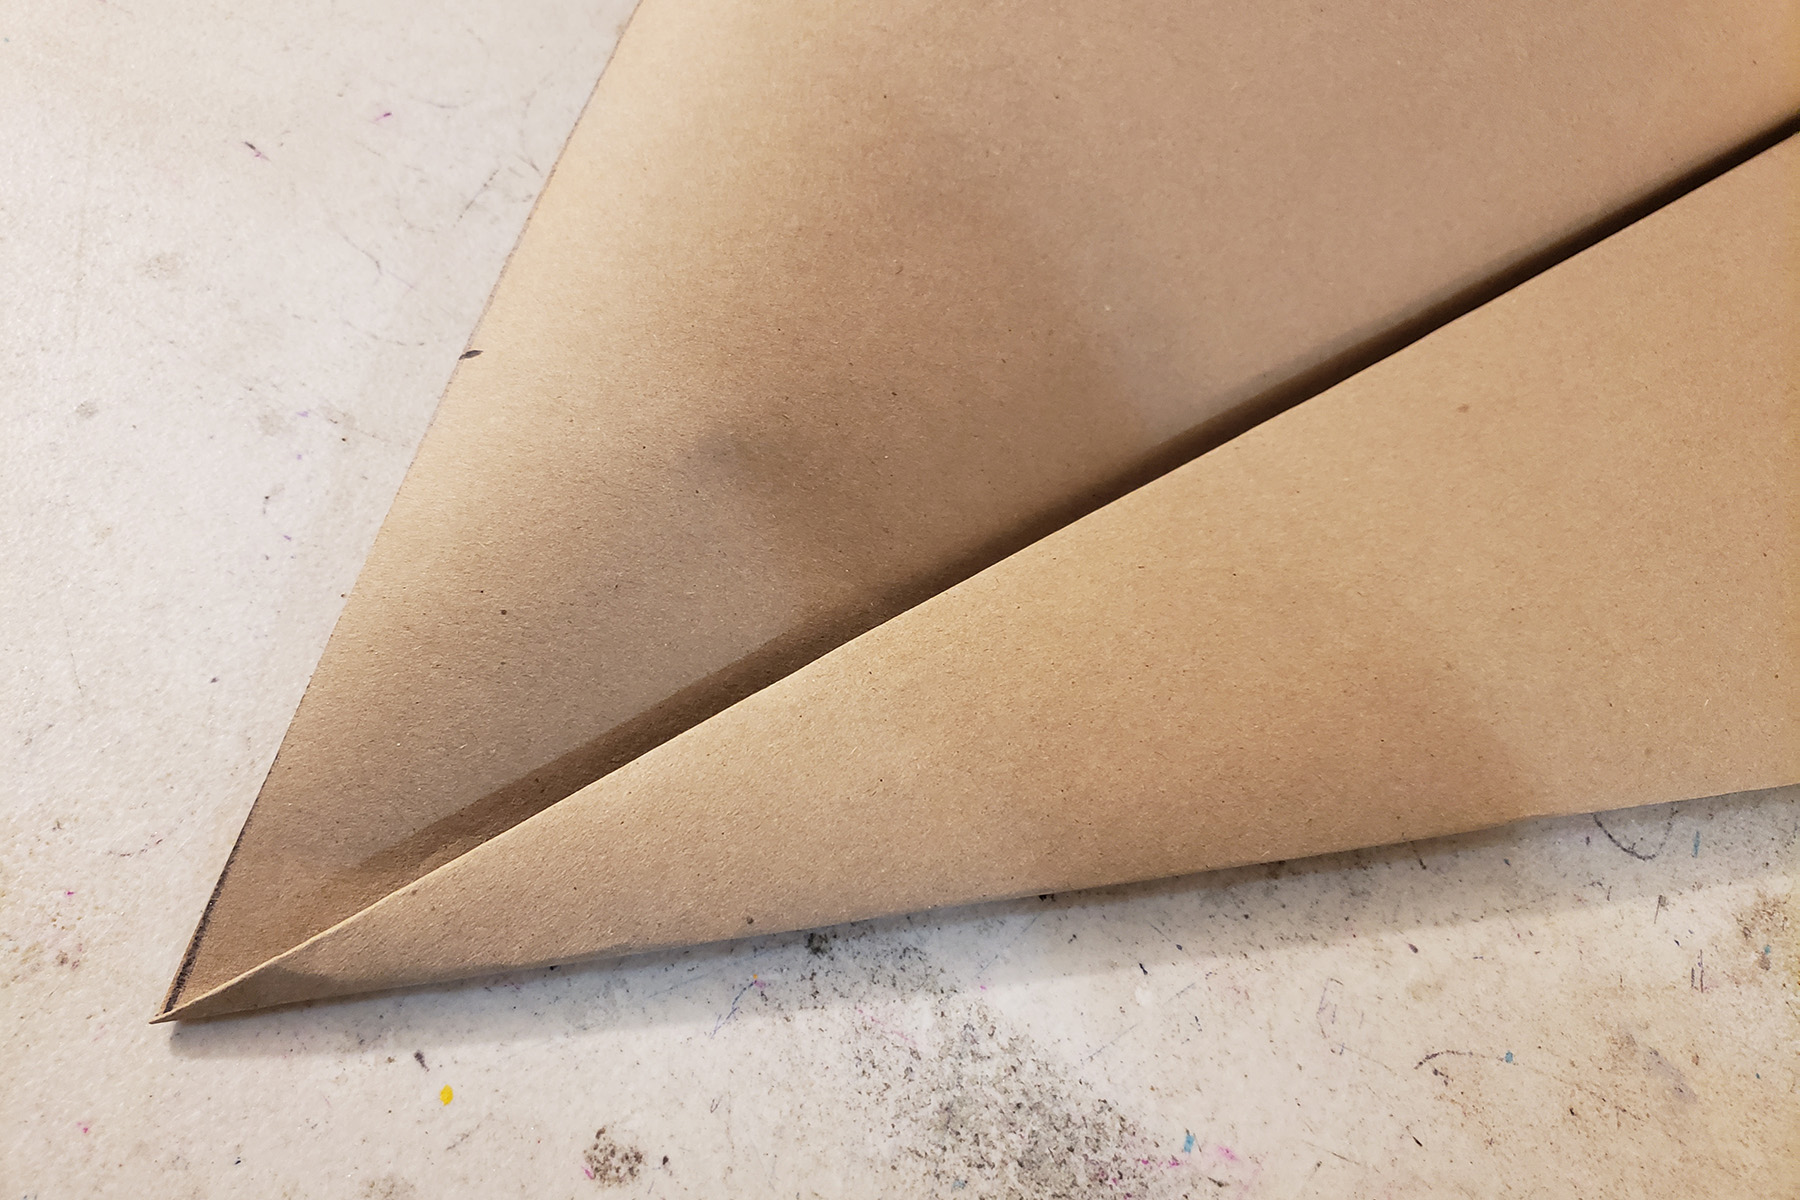 A piece of brown craft paper has been folded several times.